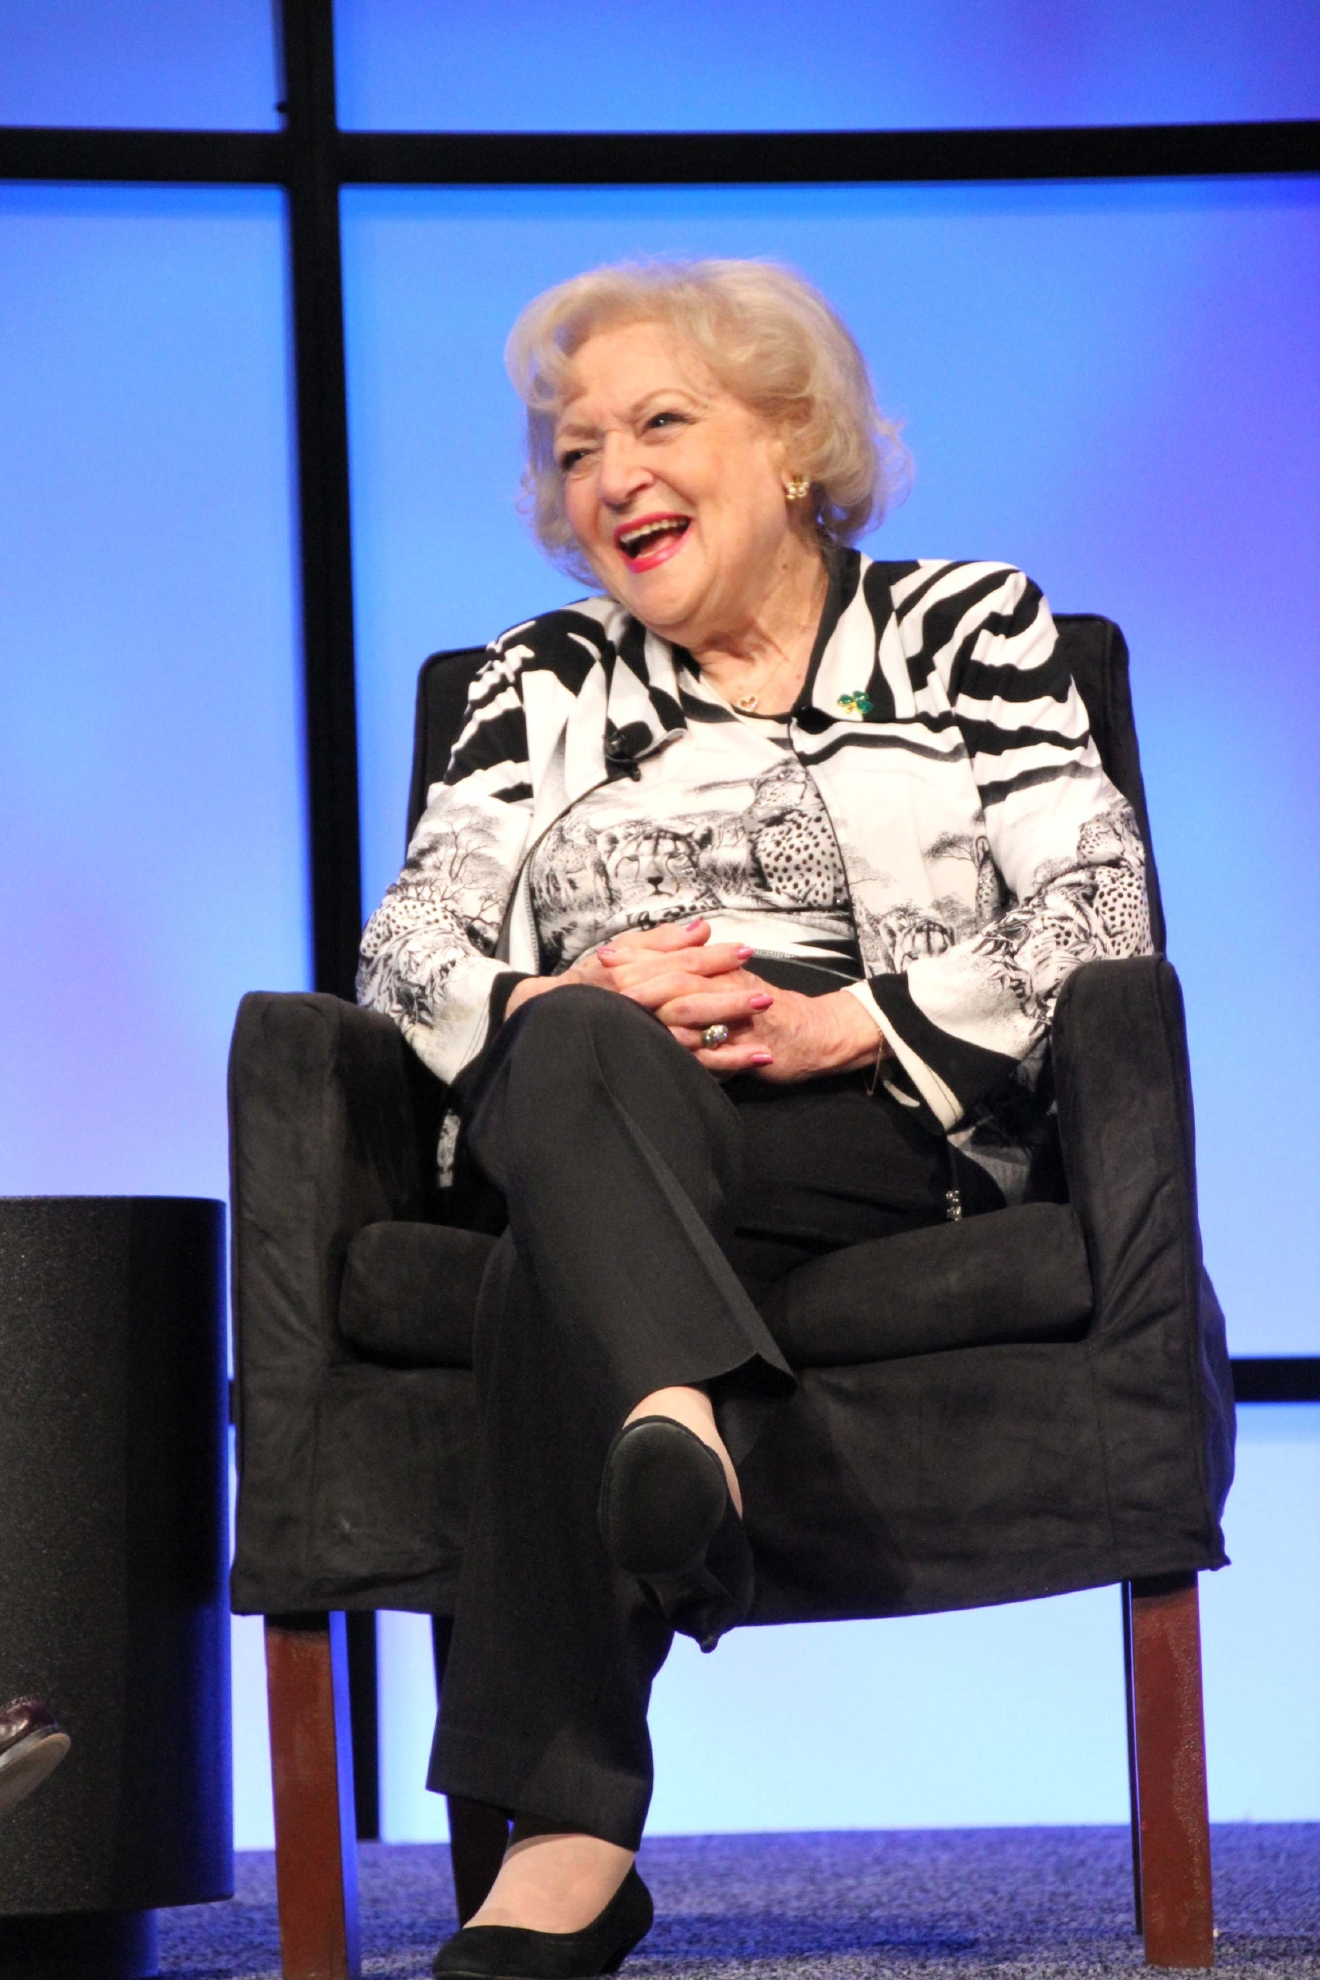 Betty White Porn Captions - Betty White Betty White Inducted Into The NAB Broadcasting Hall of Fame at  NAB Las Vegas